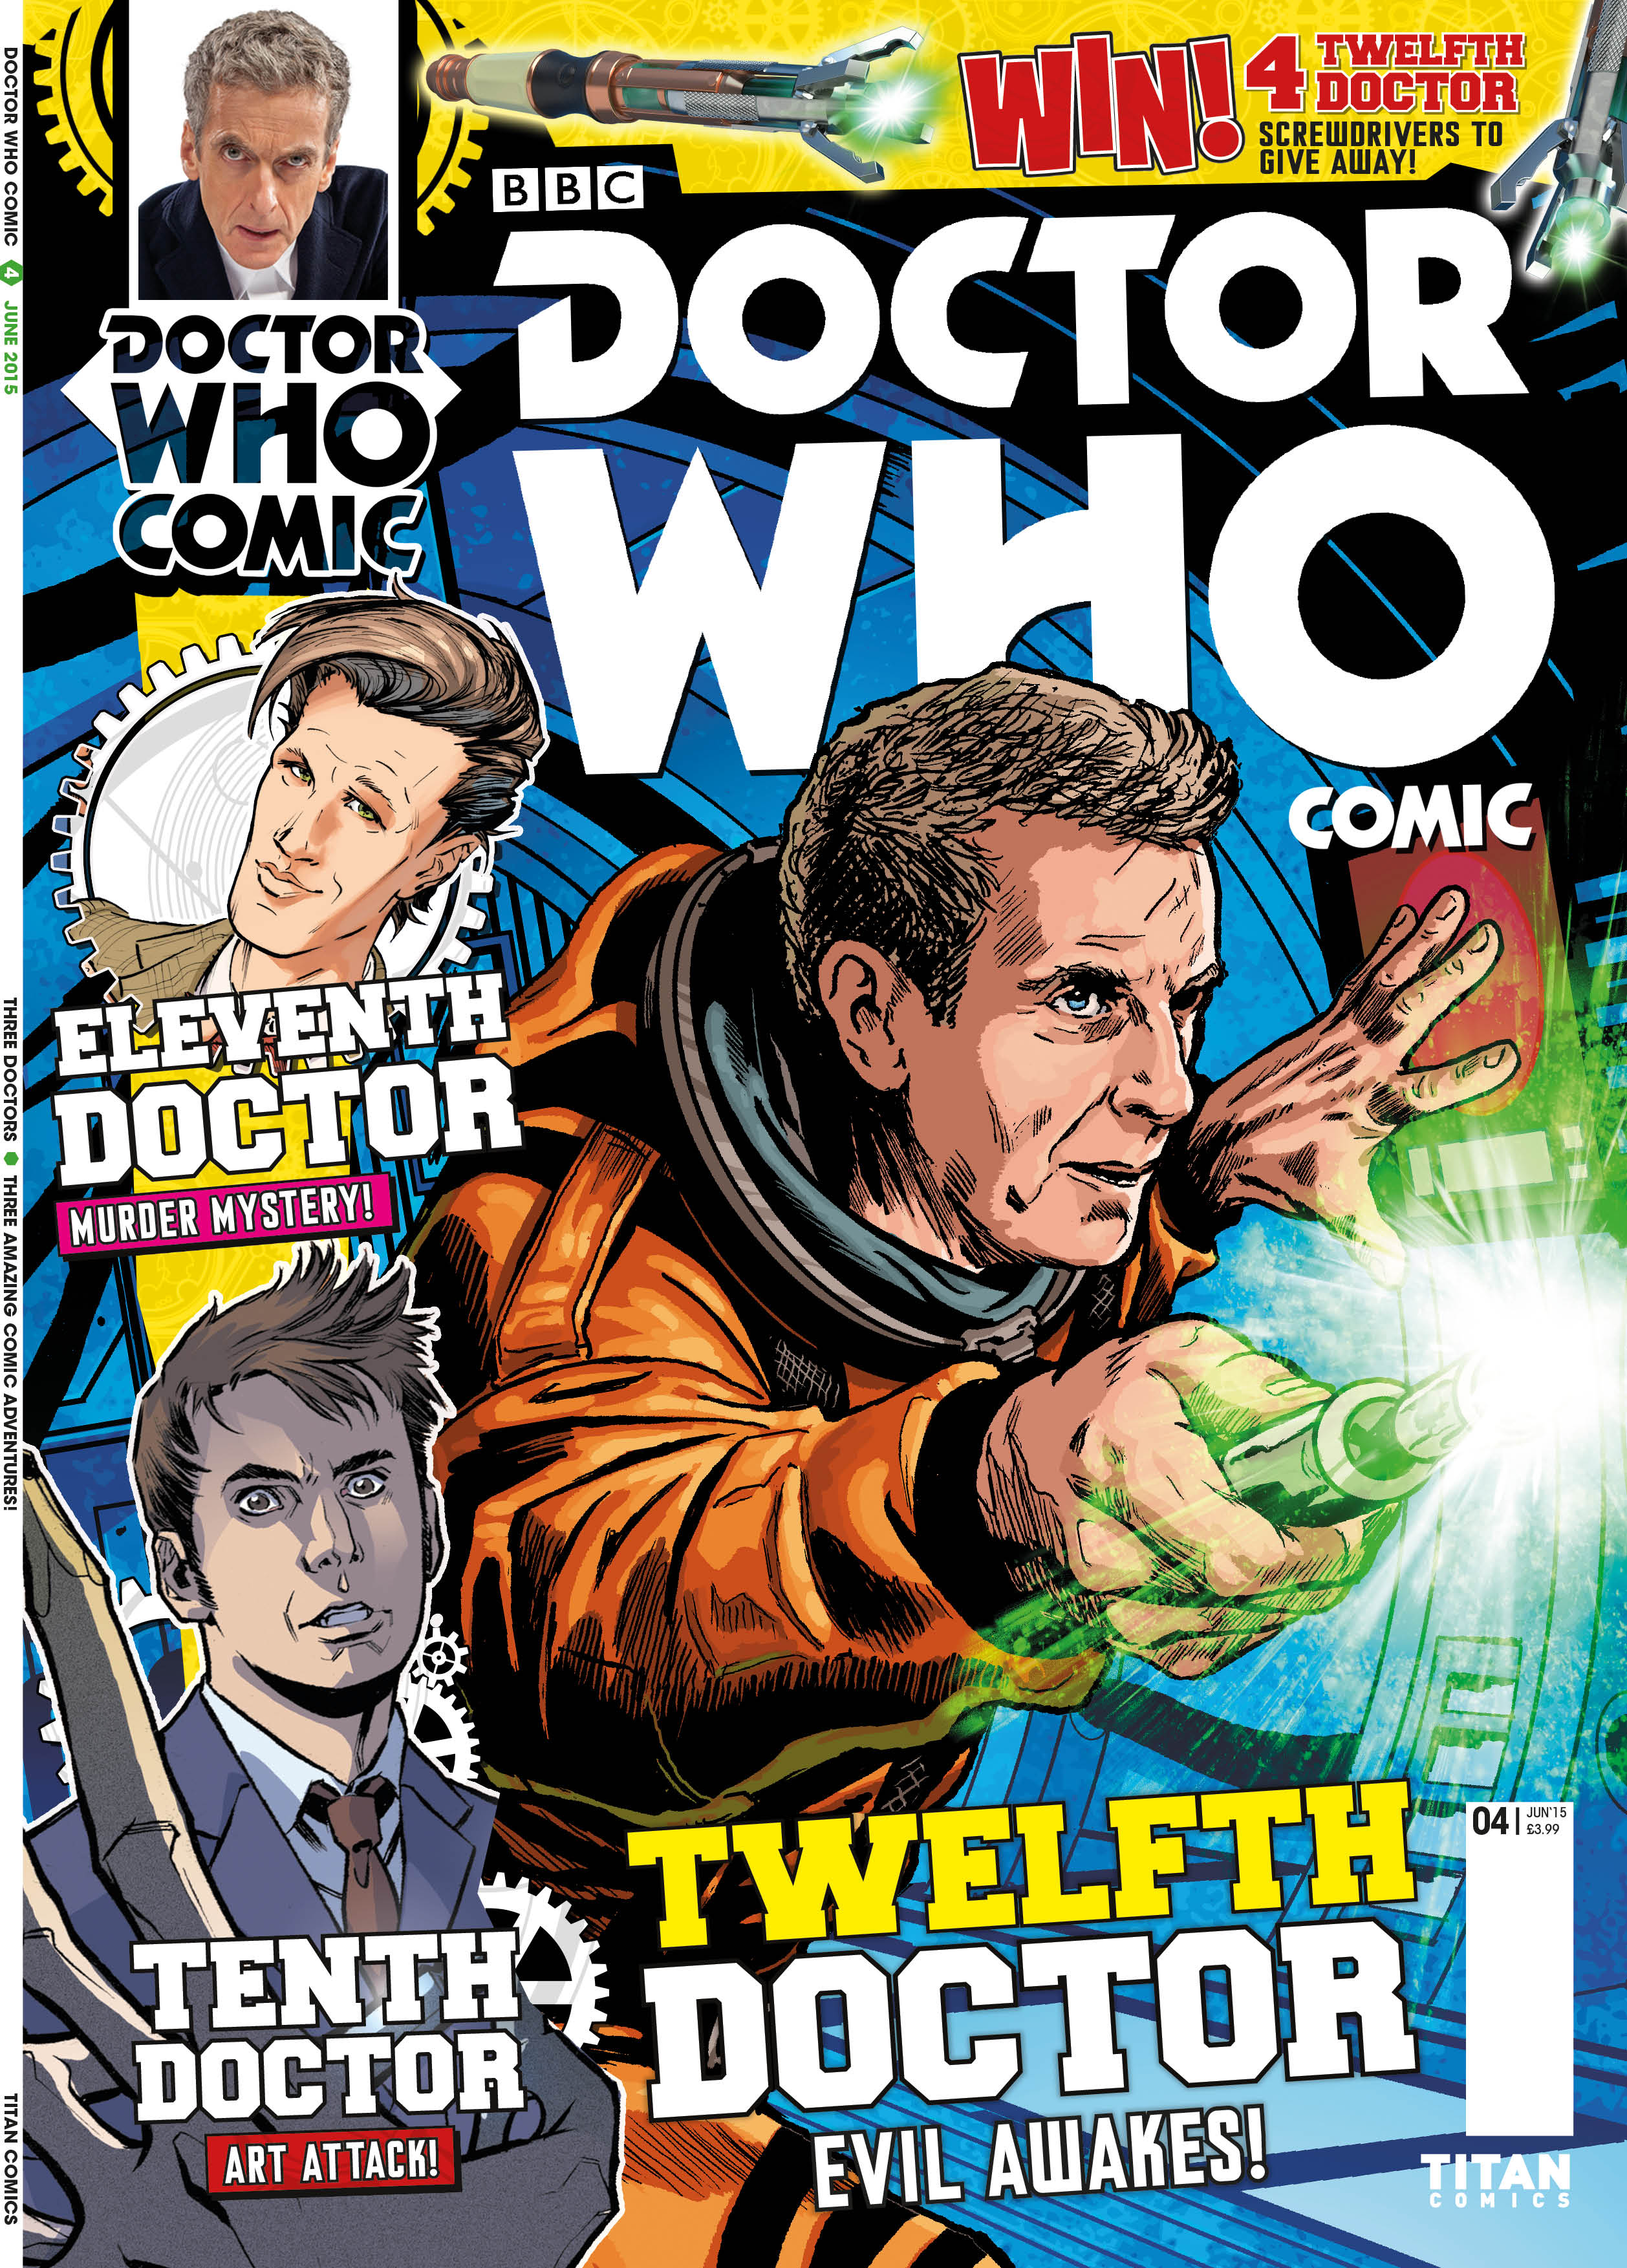 Doctor Who Comic UK #4 (Credit: Titan)